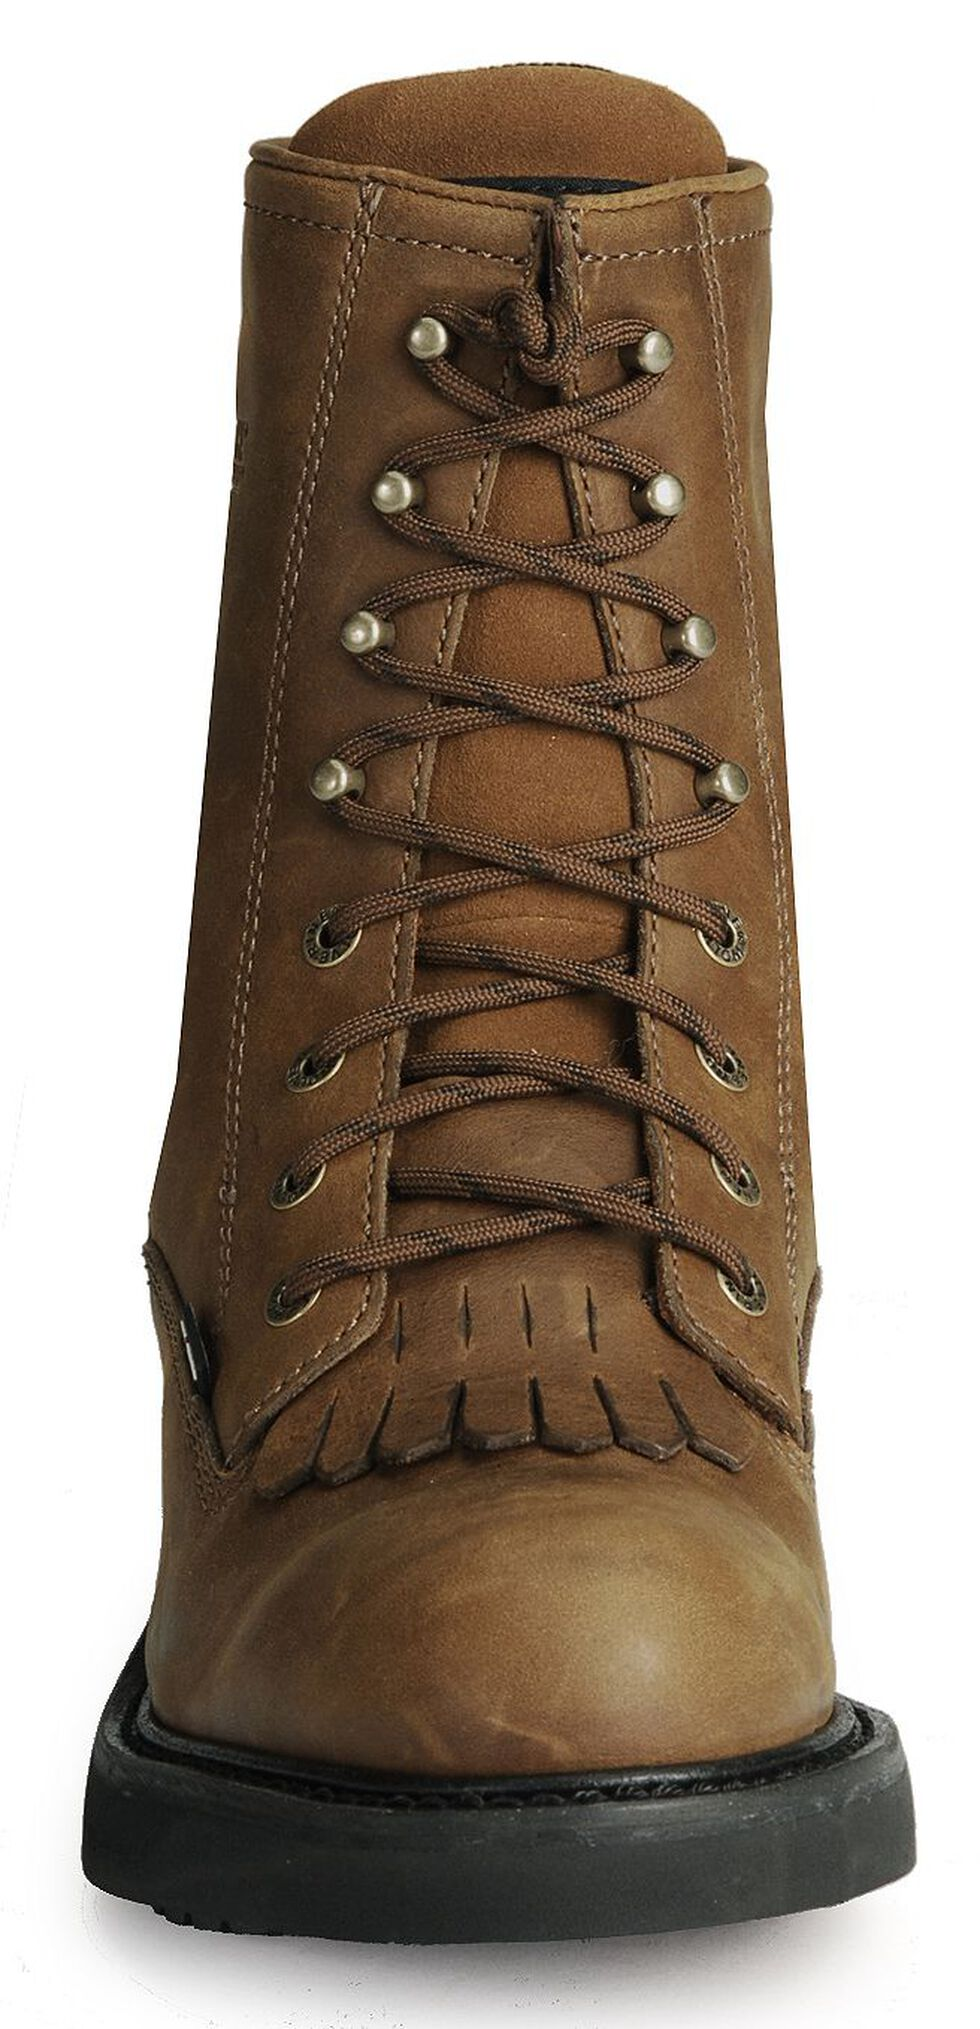 "Wolverine Ingham DuraShocks Lace-Up 8"" Work Boots - Round Toe, Dark Brown, hi-res"